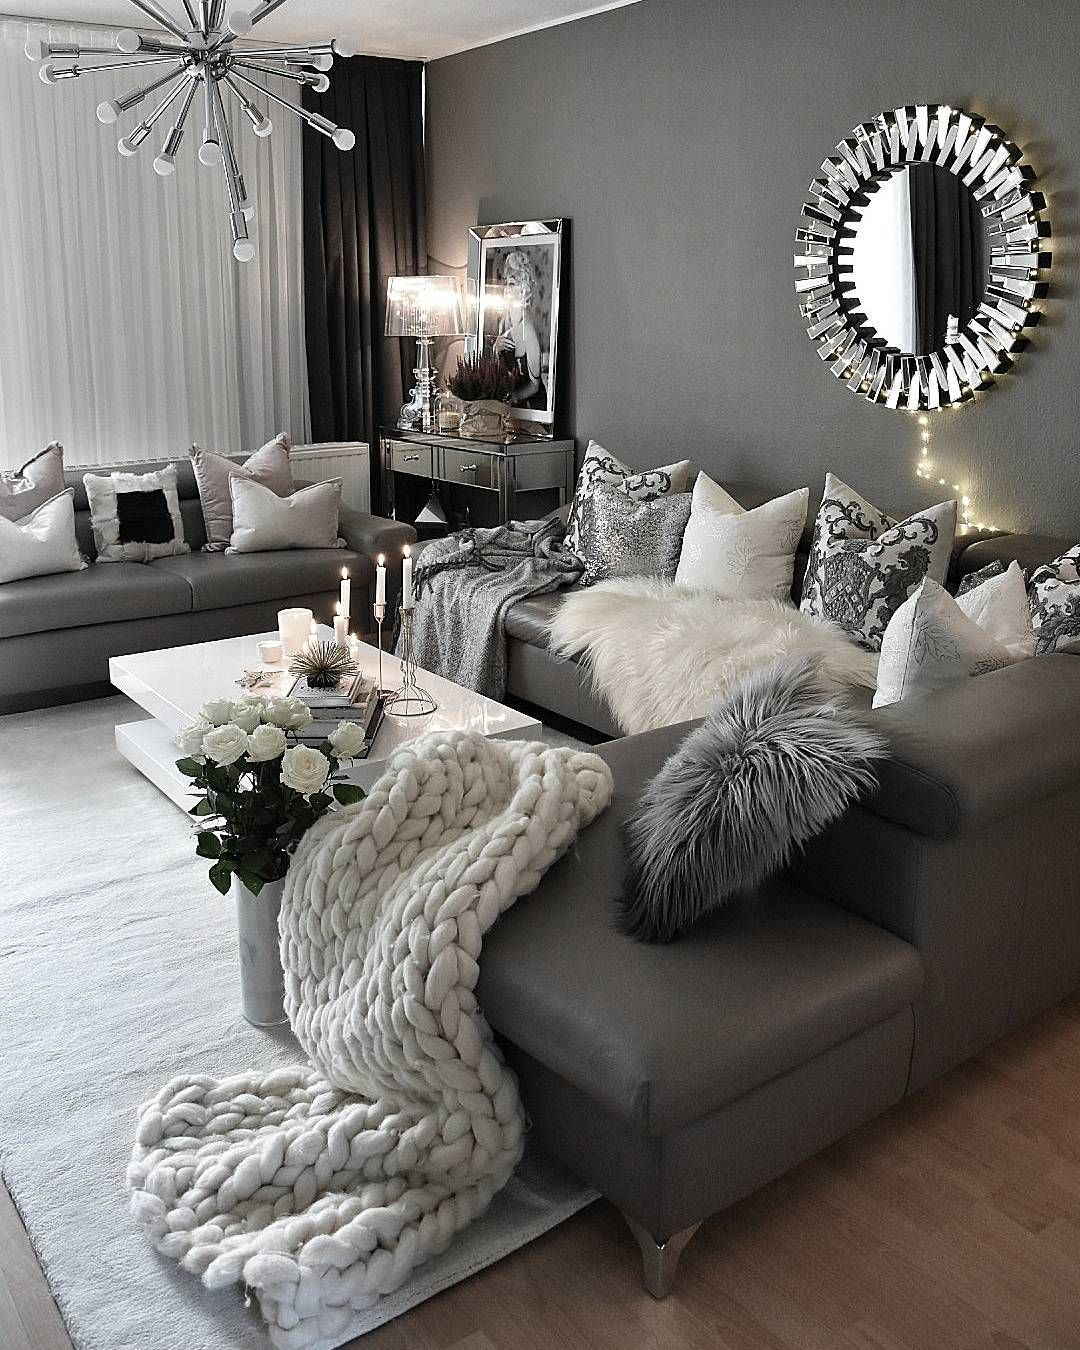 35 Cozy Home Interior Design Ideas: 20 Cosy Living Rooms You'll Never Want To Leave